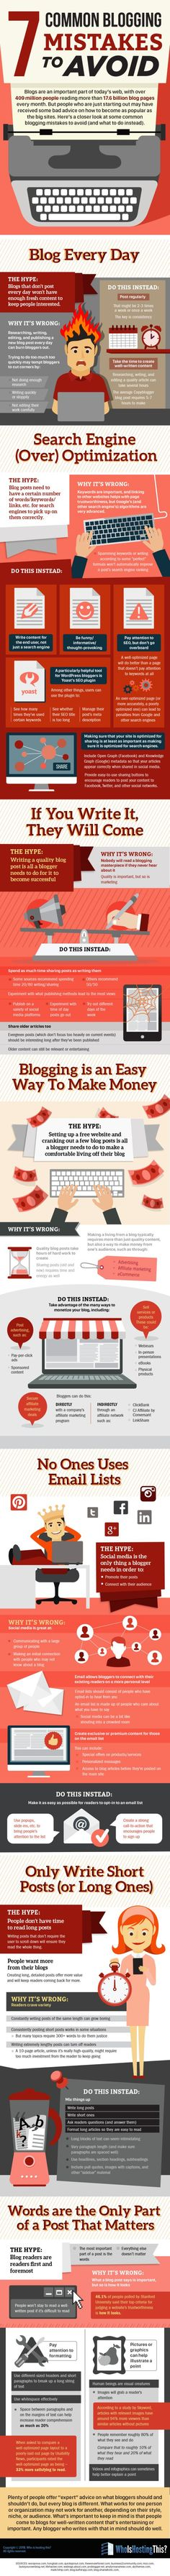 Check out this informative #infographic which offers several techniques to help you avoid common blogging mistakes.